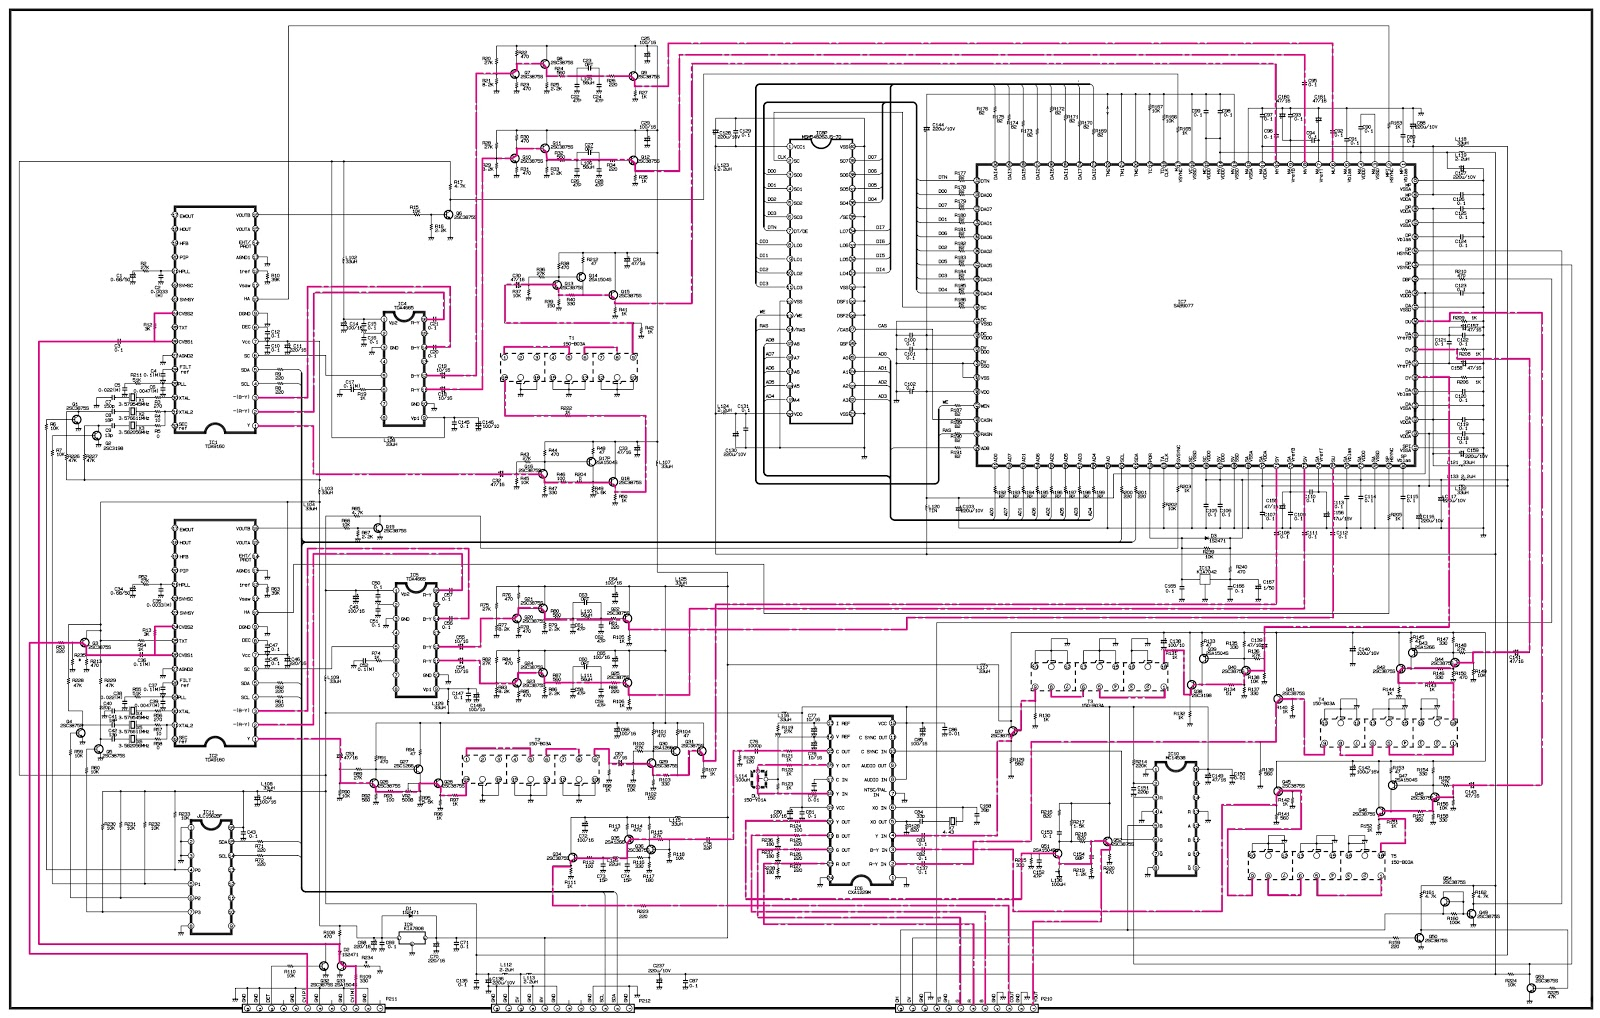 weldex wiring diagram schematic diagrams rh ogmconsulting co